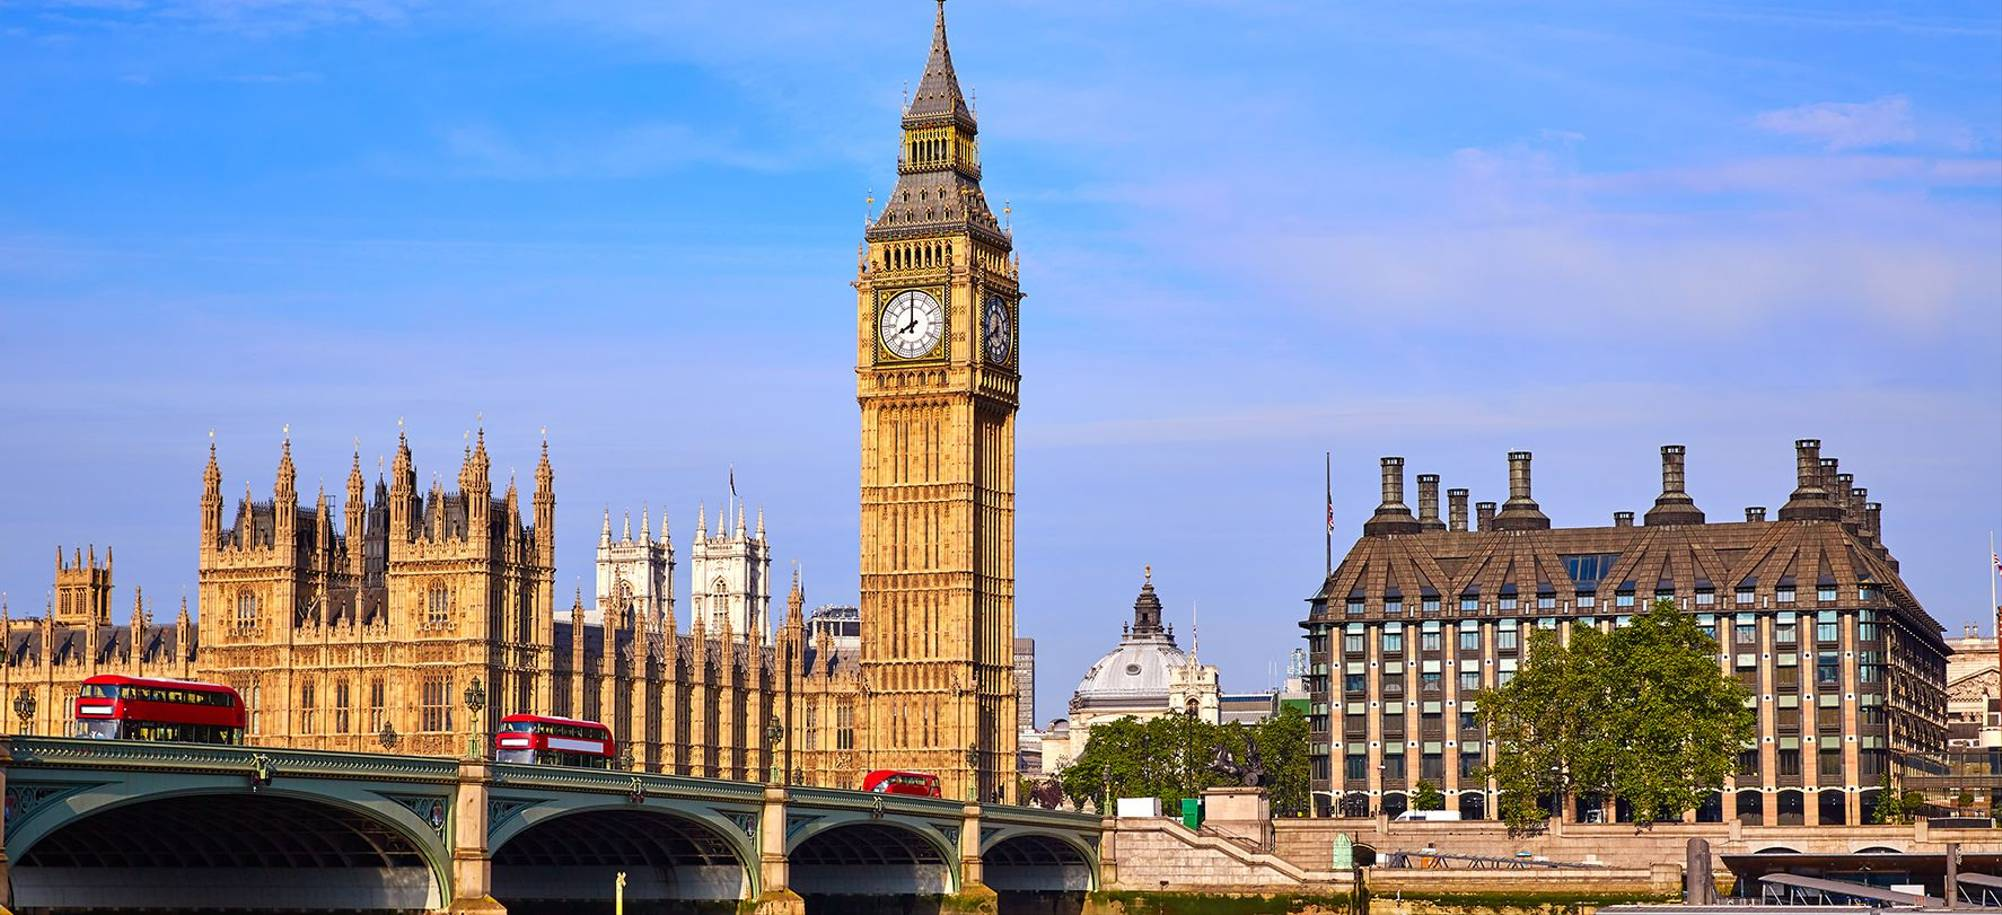 London   Westminster Bridge, Big Ben And Houses Of Parliament   Itinerary Desktop